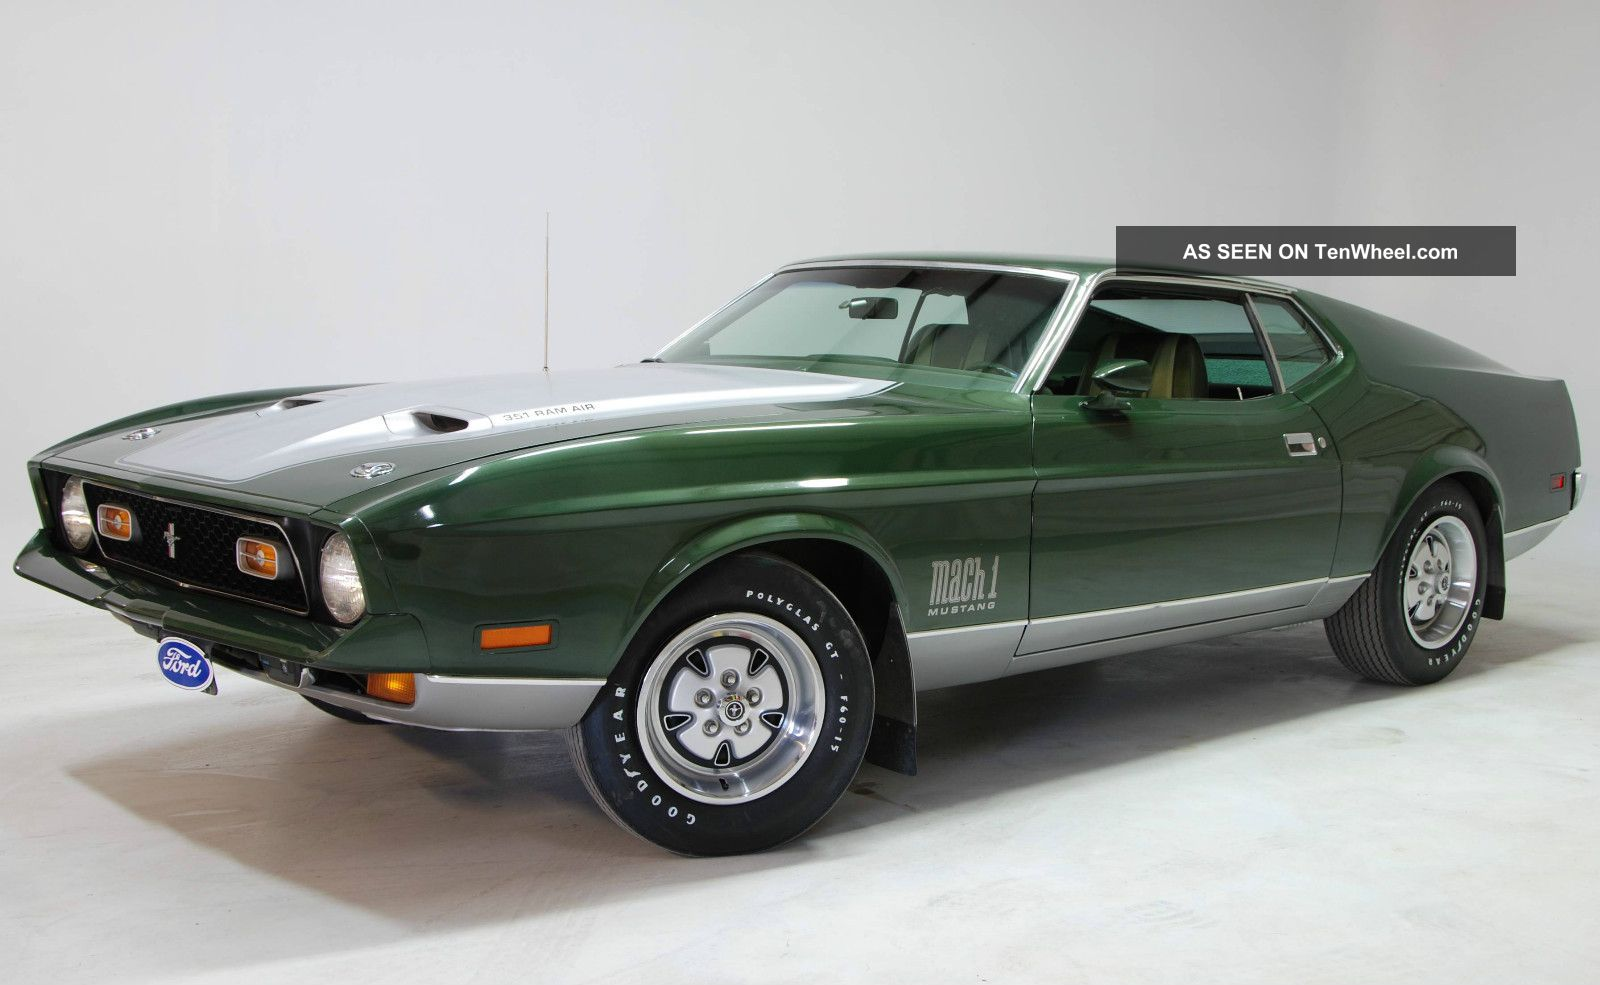 1971 ford mustang mach 1 paint upholstery l k mustang photo 2. Cars Review. Best American Auto & Cars Review